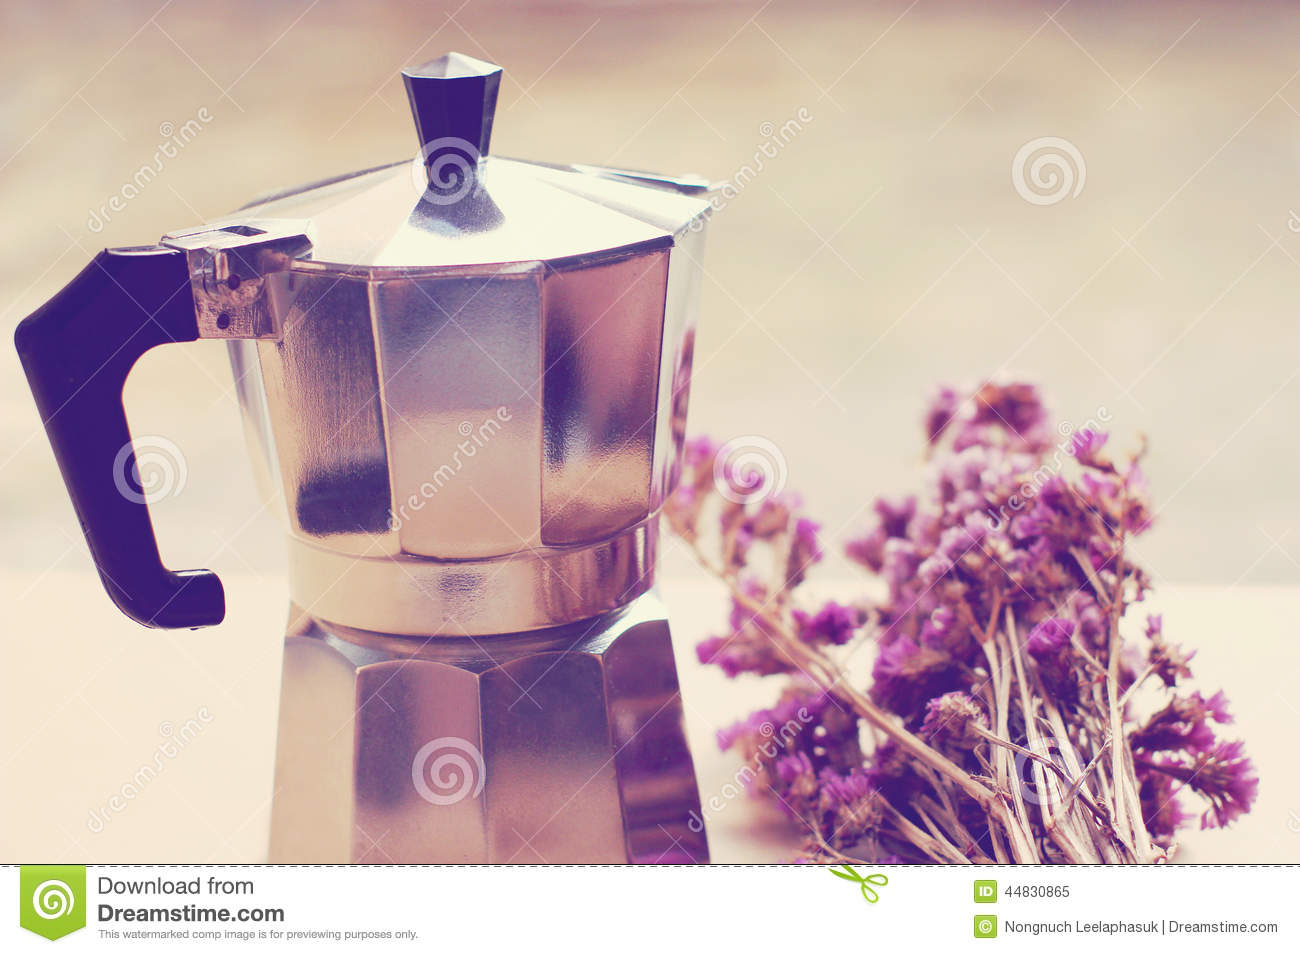 Italian Coffee Maker And Flower With Retro Filter Stock Photo - Image: 44830865